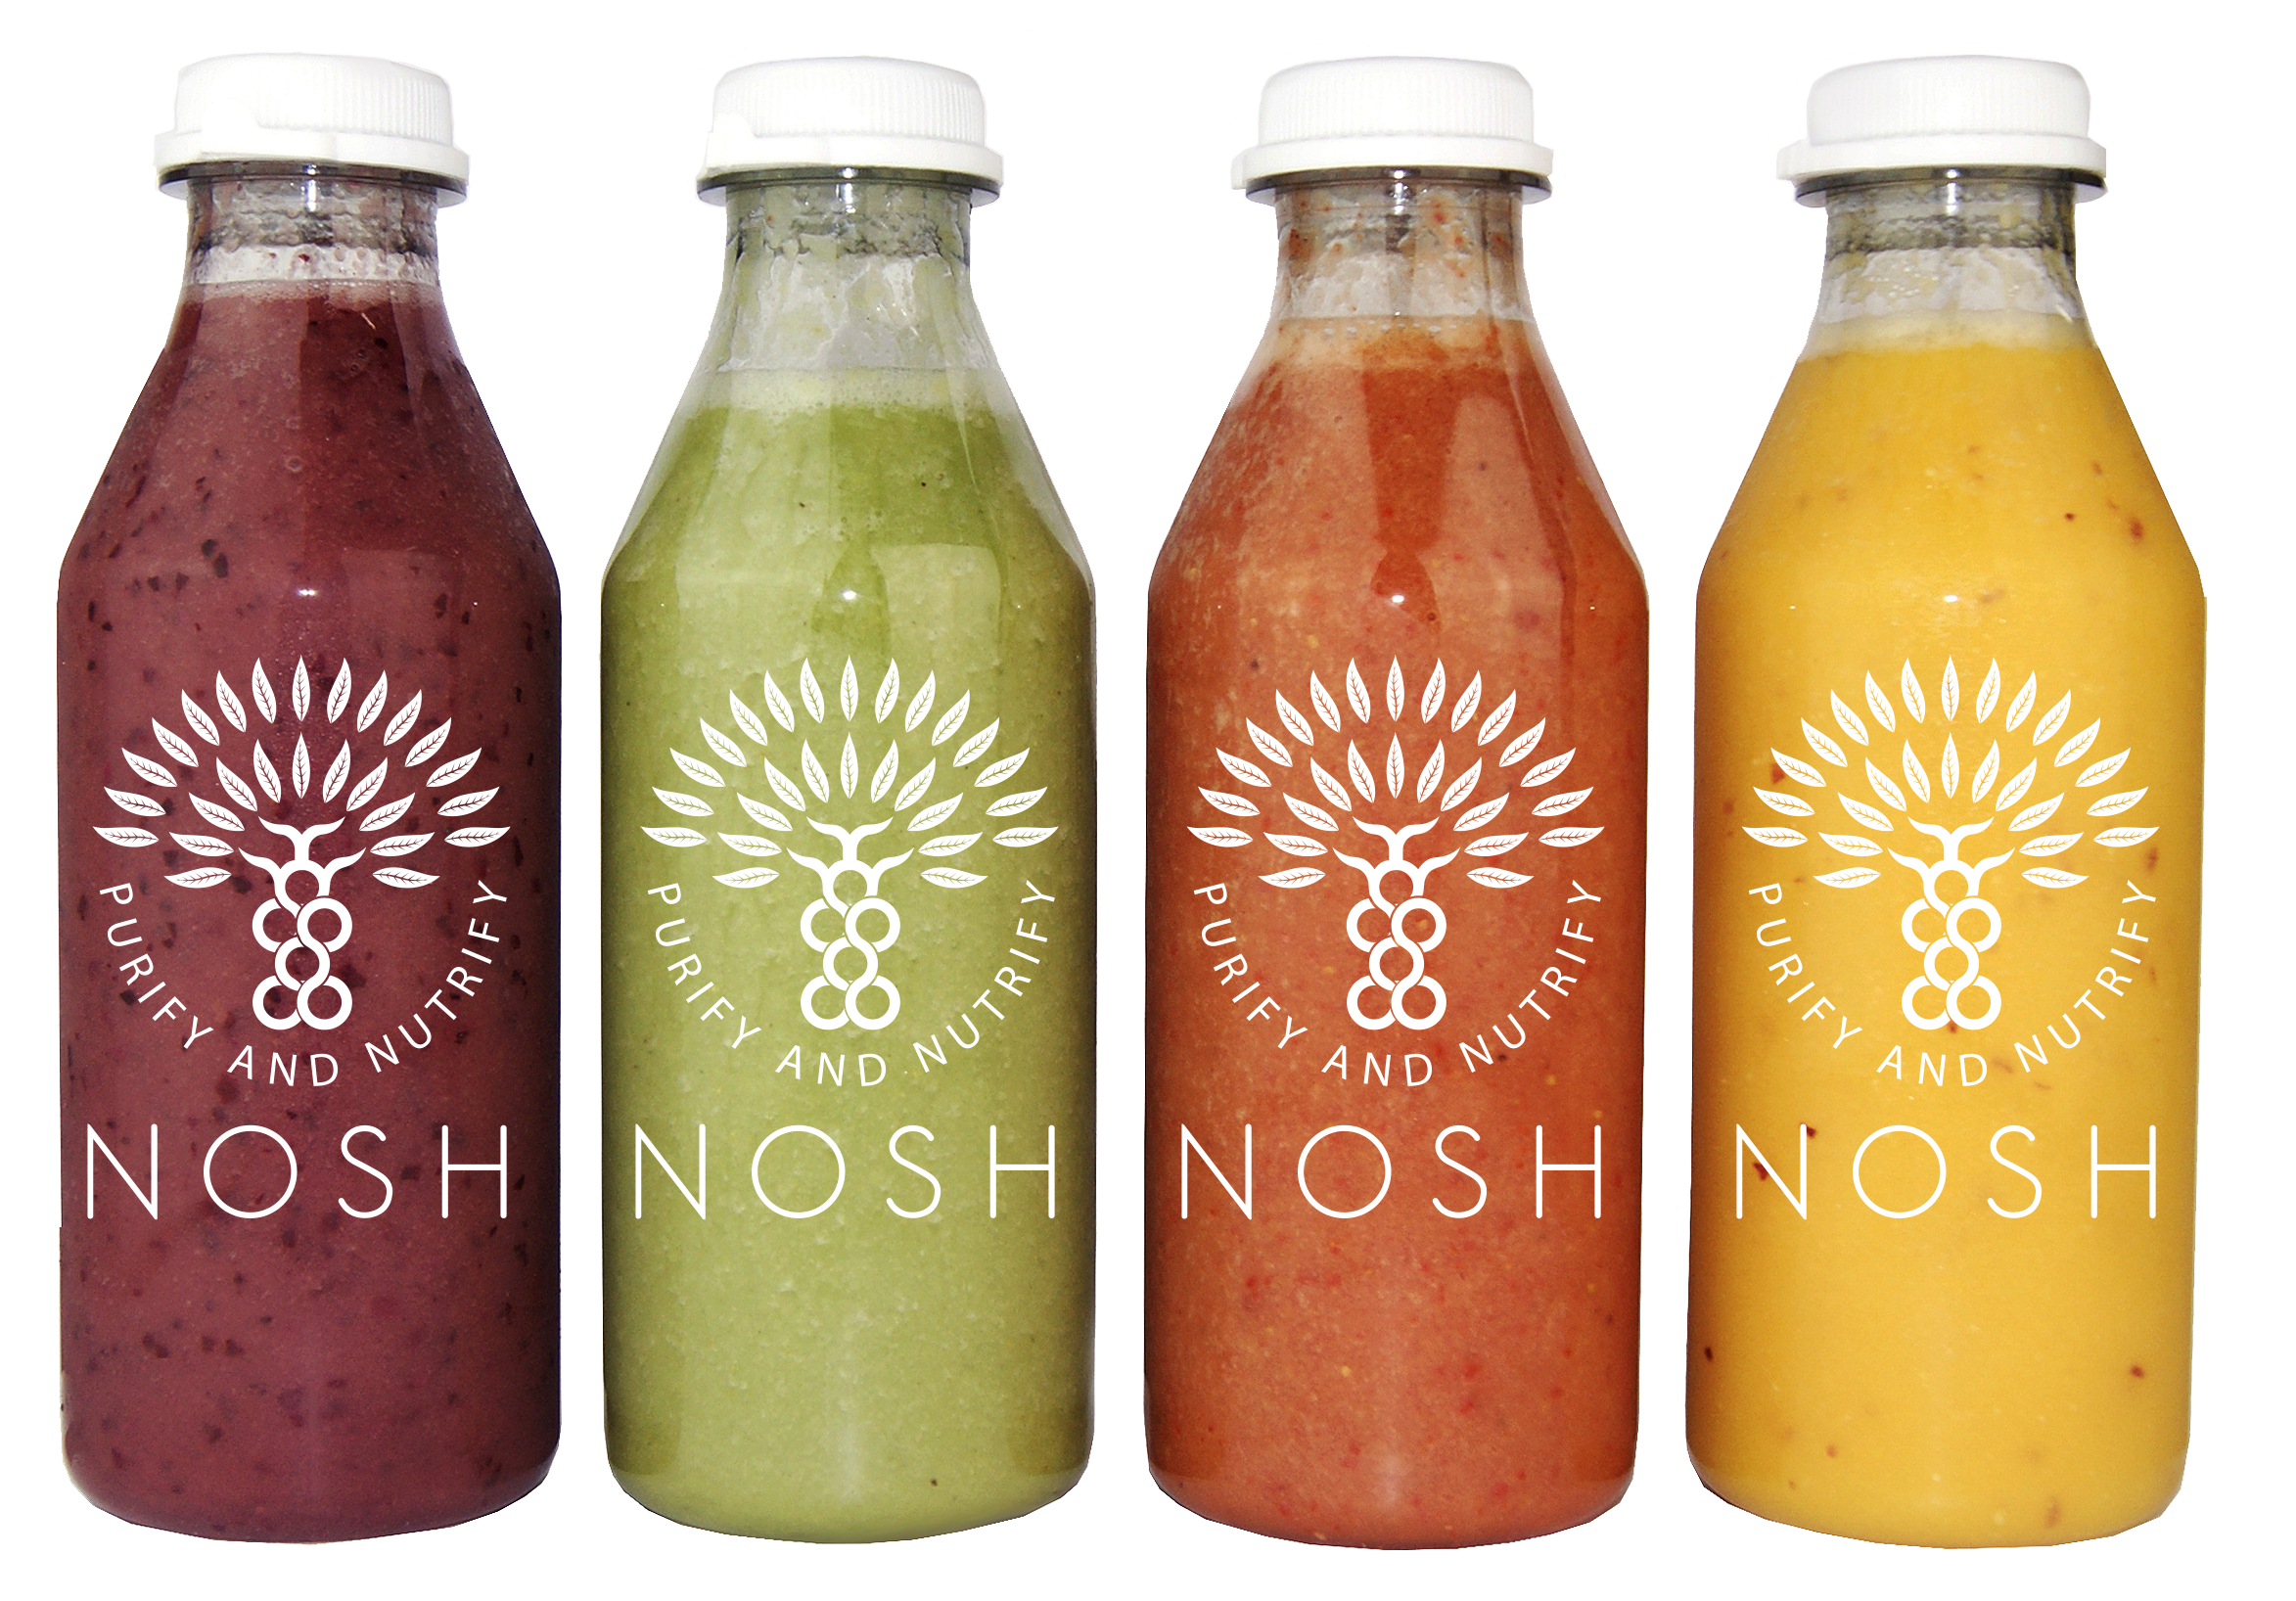 30 Digital Champions: The healthy food brand now putting technology at its core